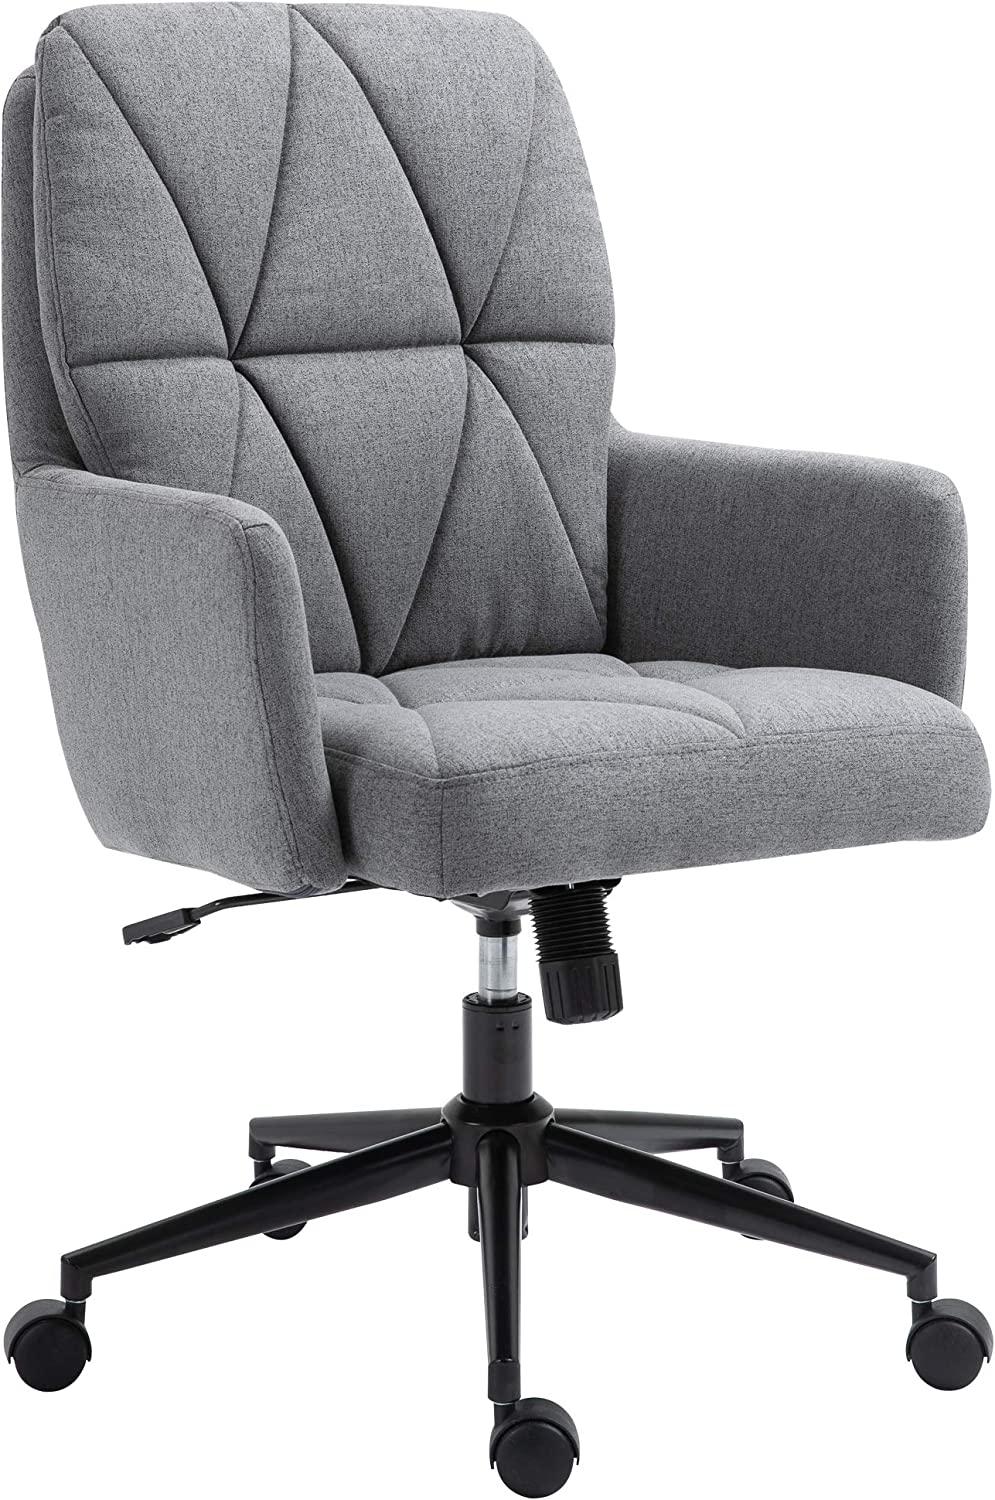 Vinsetto 5% OFF Office Chair Swivel Double Upholstered Task Purchase with